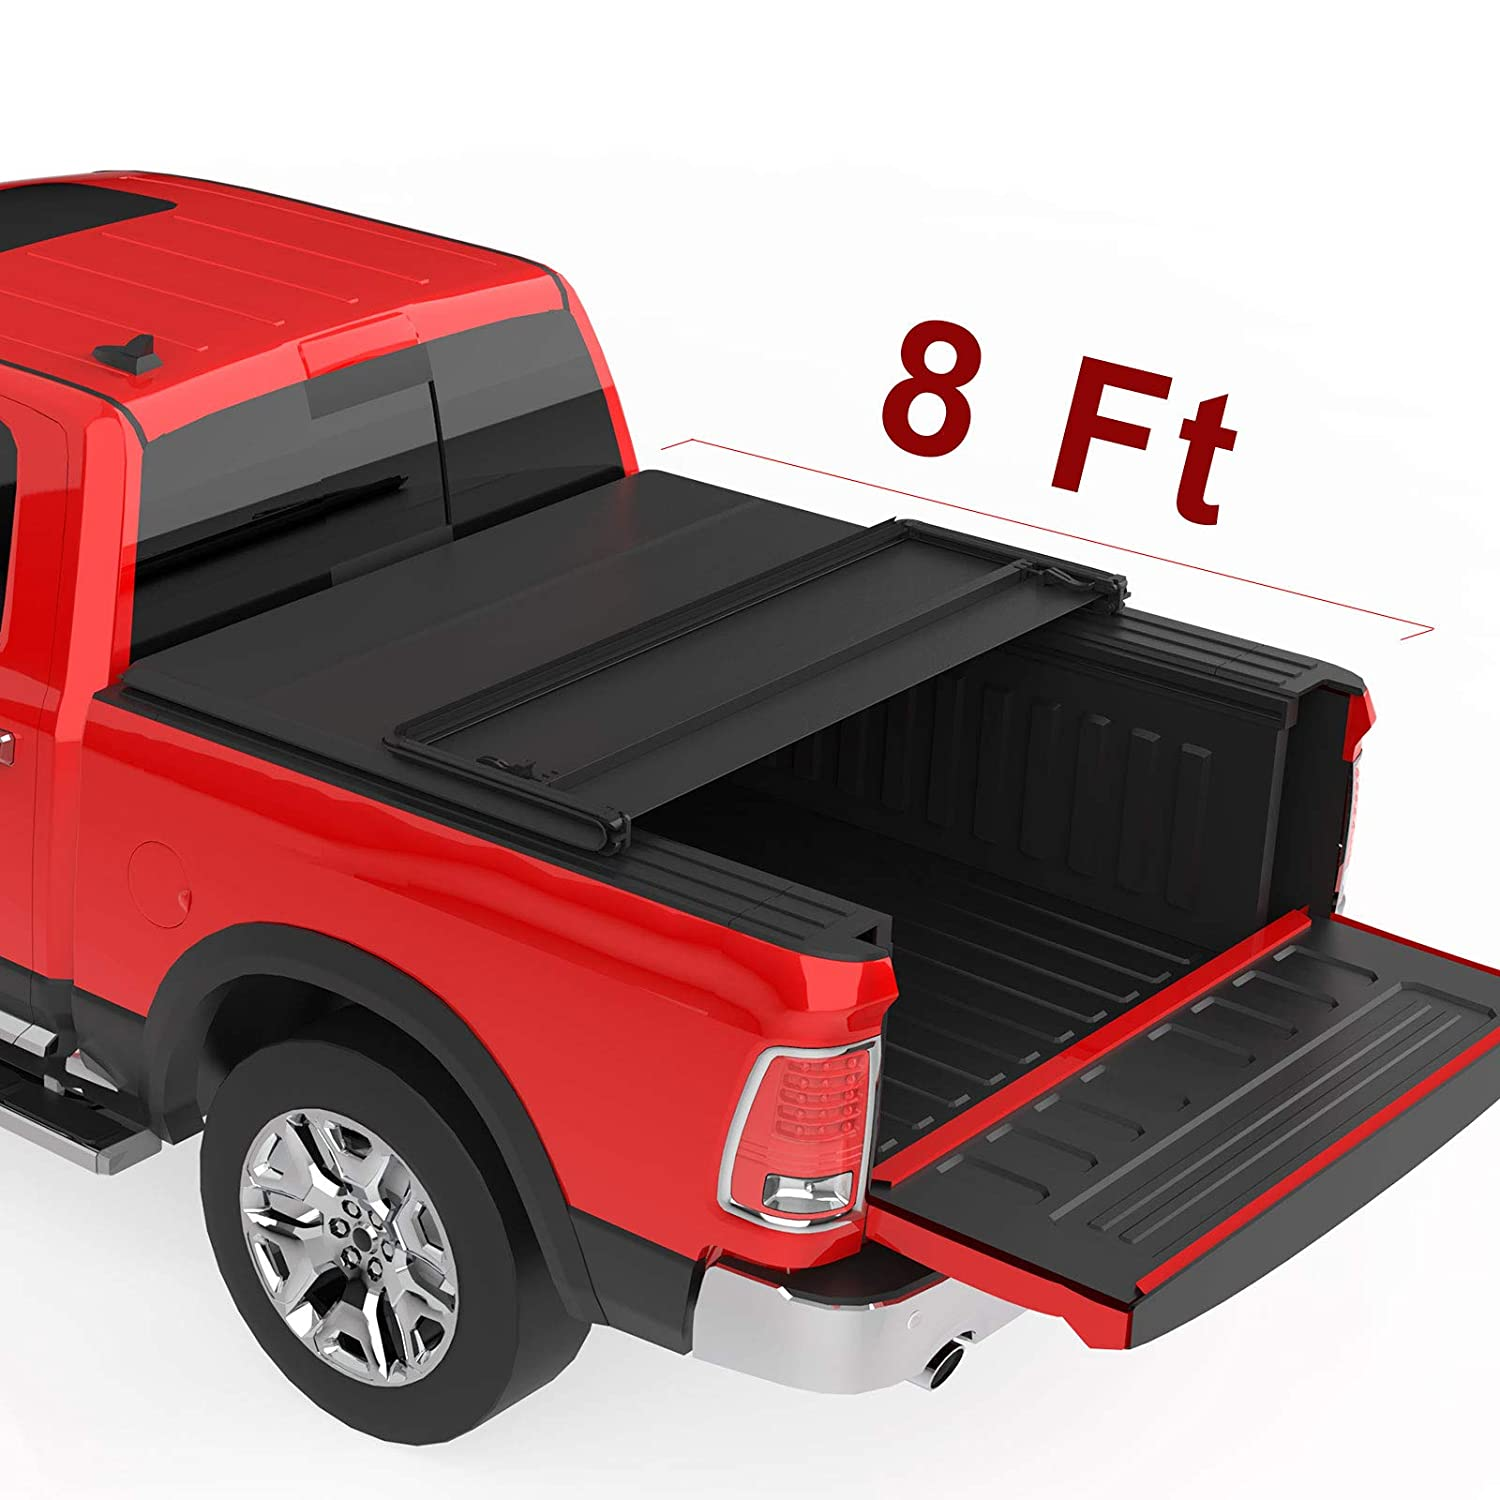 2003-2018 Dodge Ram 2500 3500 with 6.4ft Bed oEdRo Upgraded Soft Tri-fold Truck Bed Tonneau Cover On Top Compatible for 2002-2019 Dodge Ram 1500 Fleetside Without Ram Box Only 2019 Classic